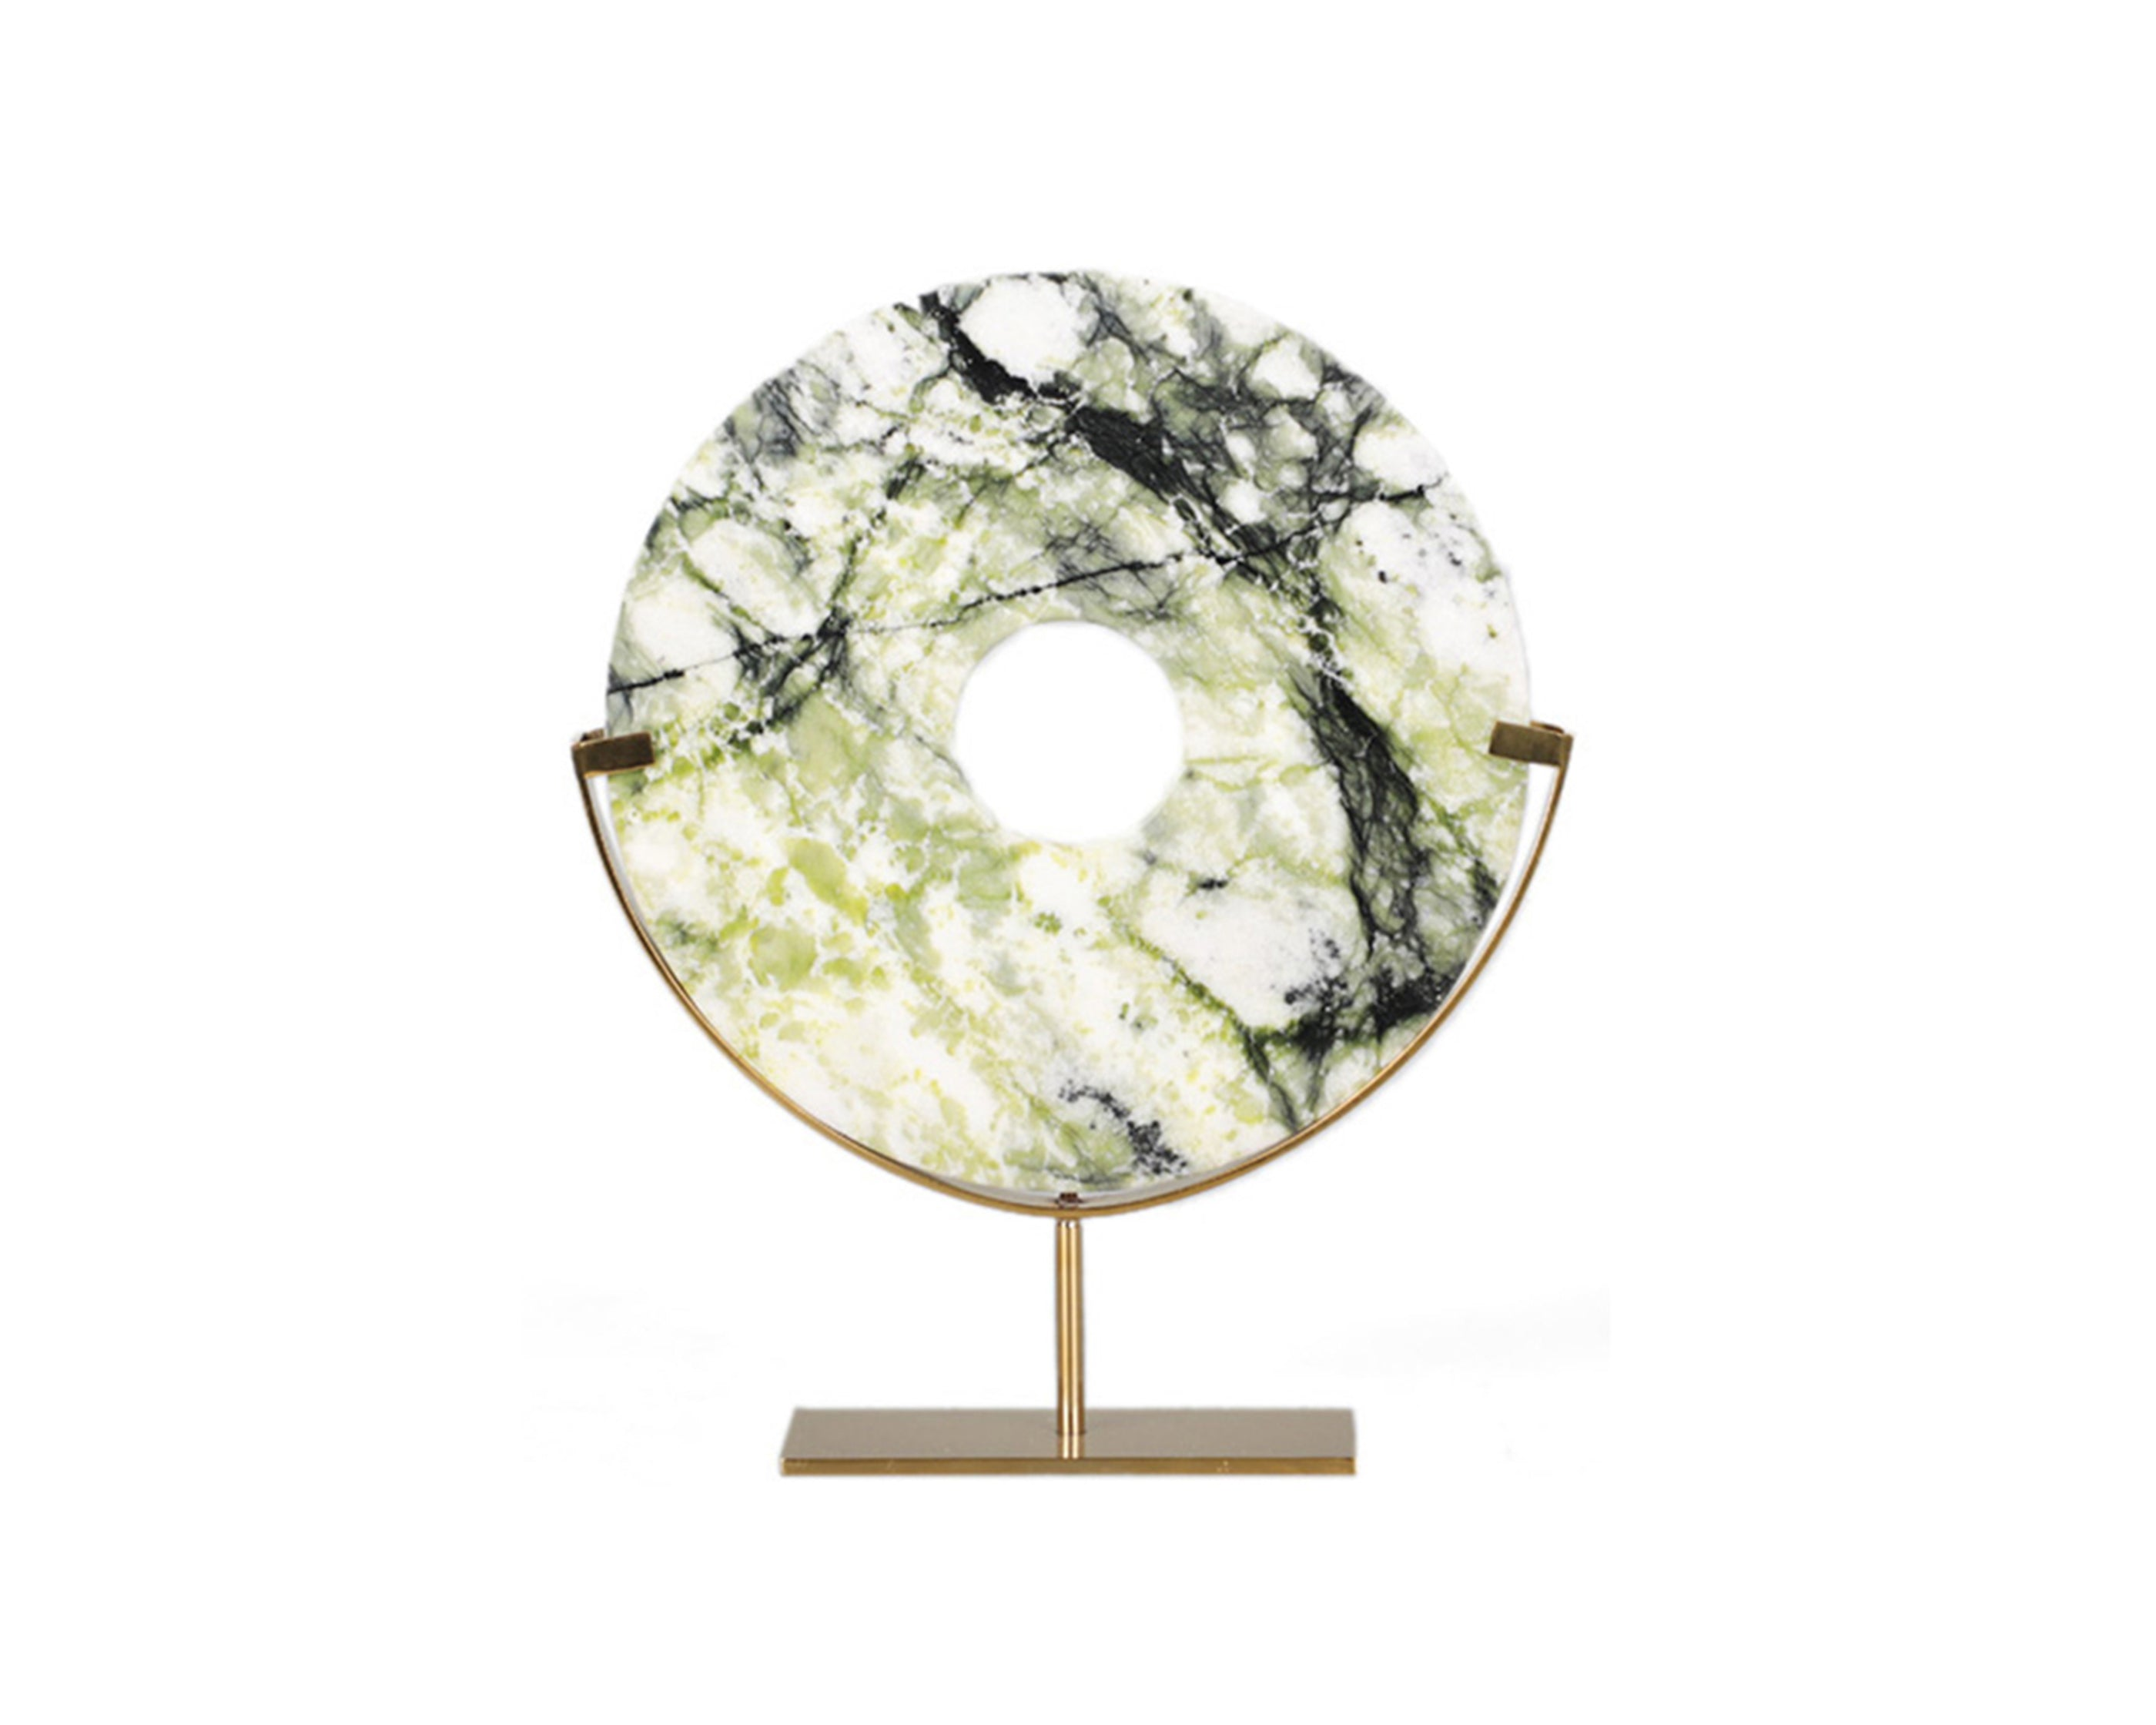 Liang & Eimil Artistic Marble Sculpture - Brass Stainless Steel Base